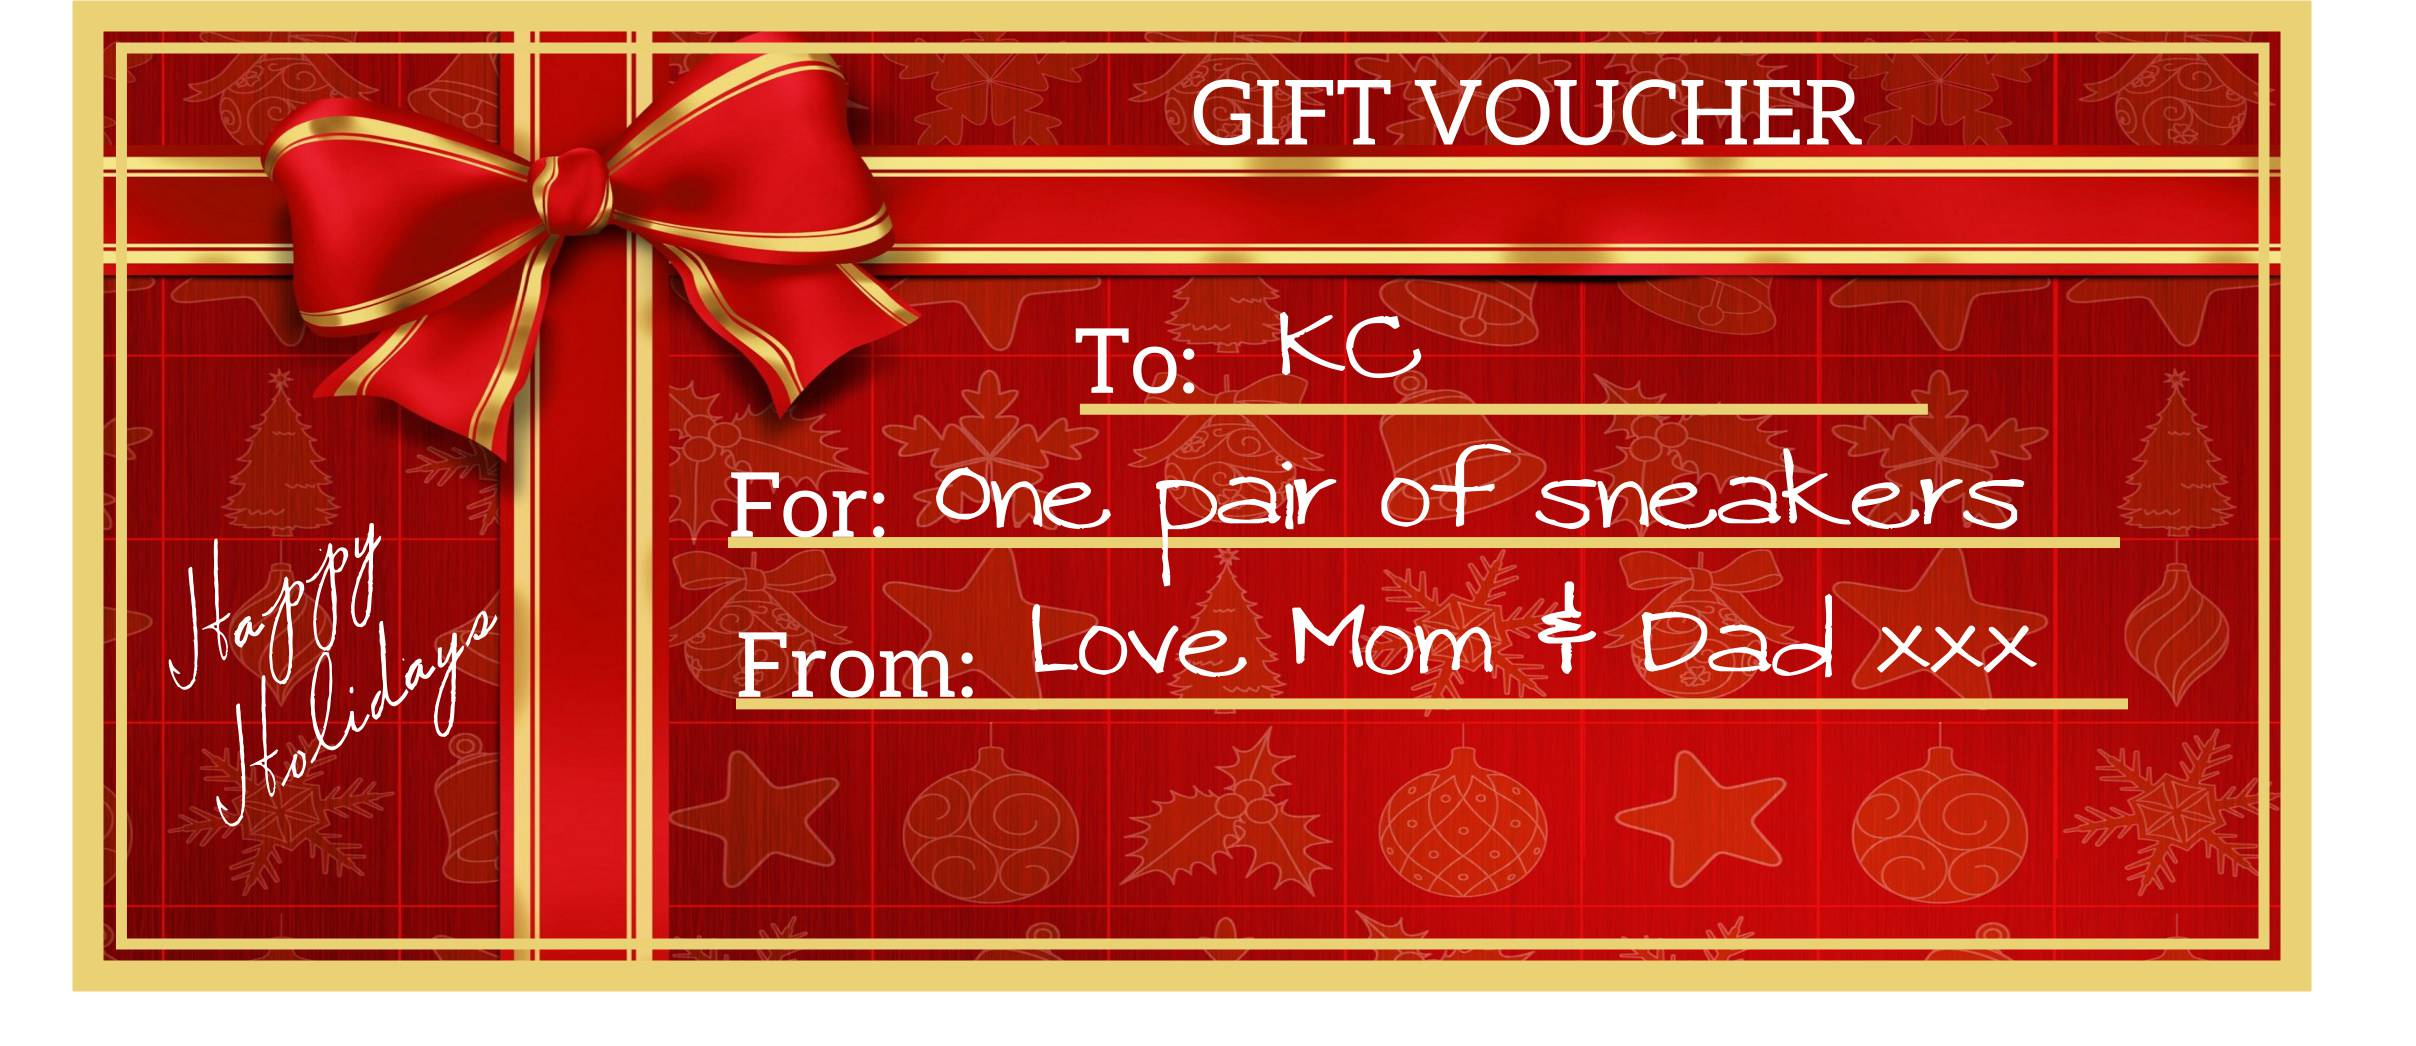 Gift Vouchers for the holidays – Download and Edit